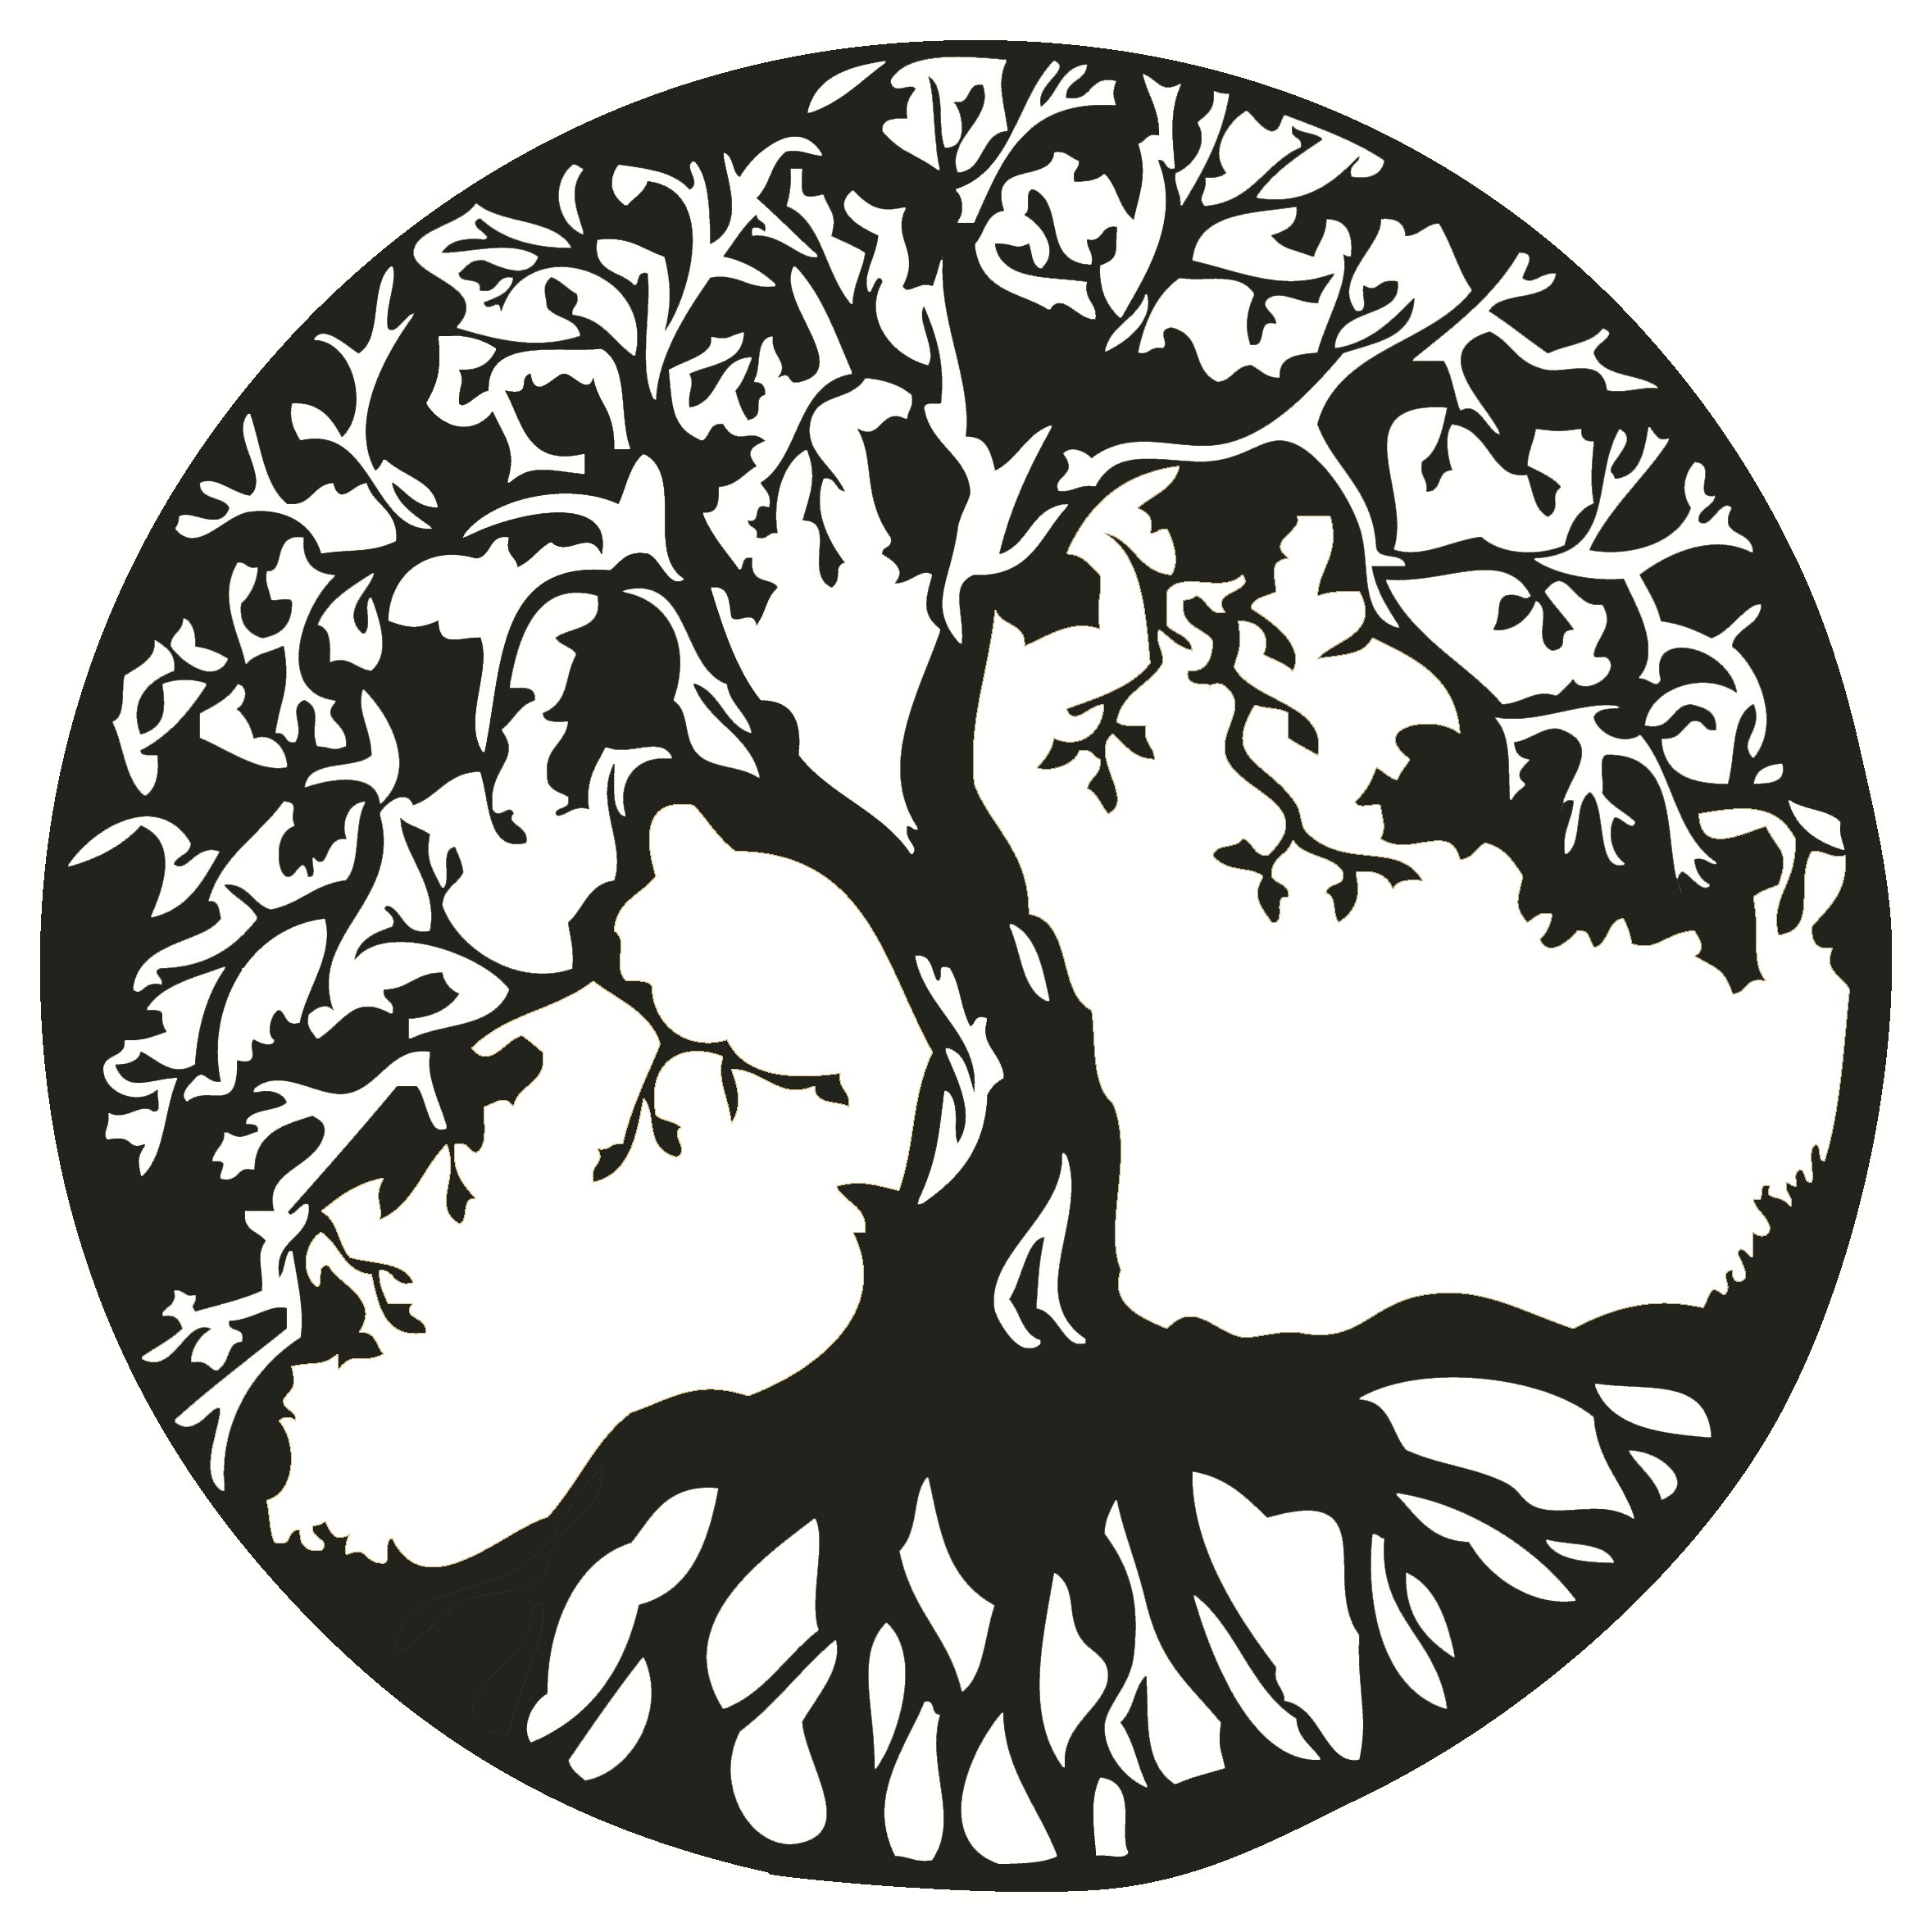 Branch and Bough Tree Service and Landscape Care logo